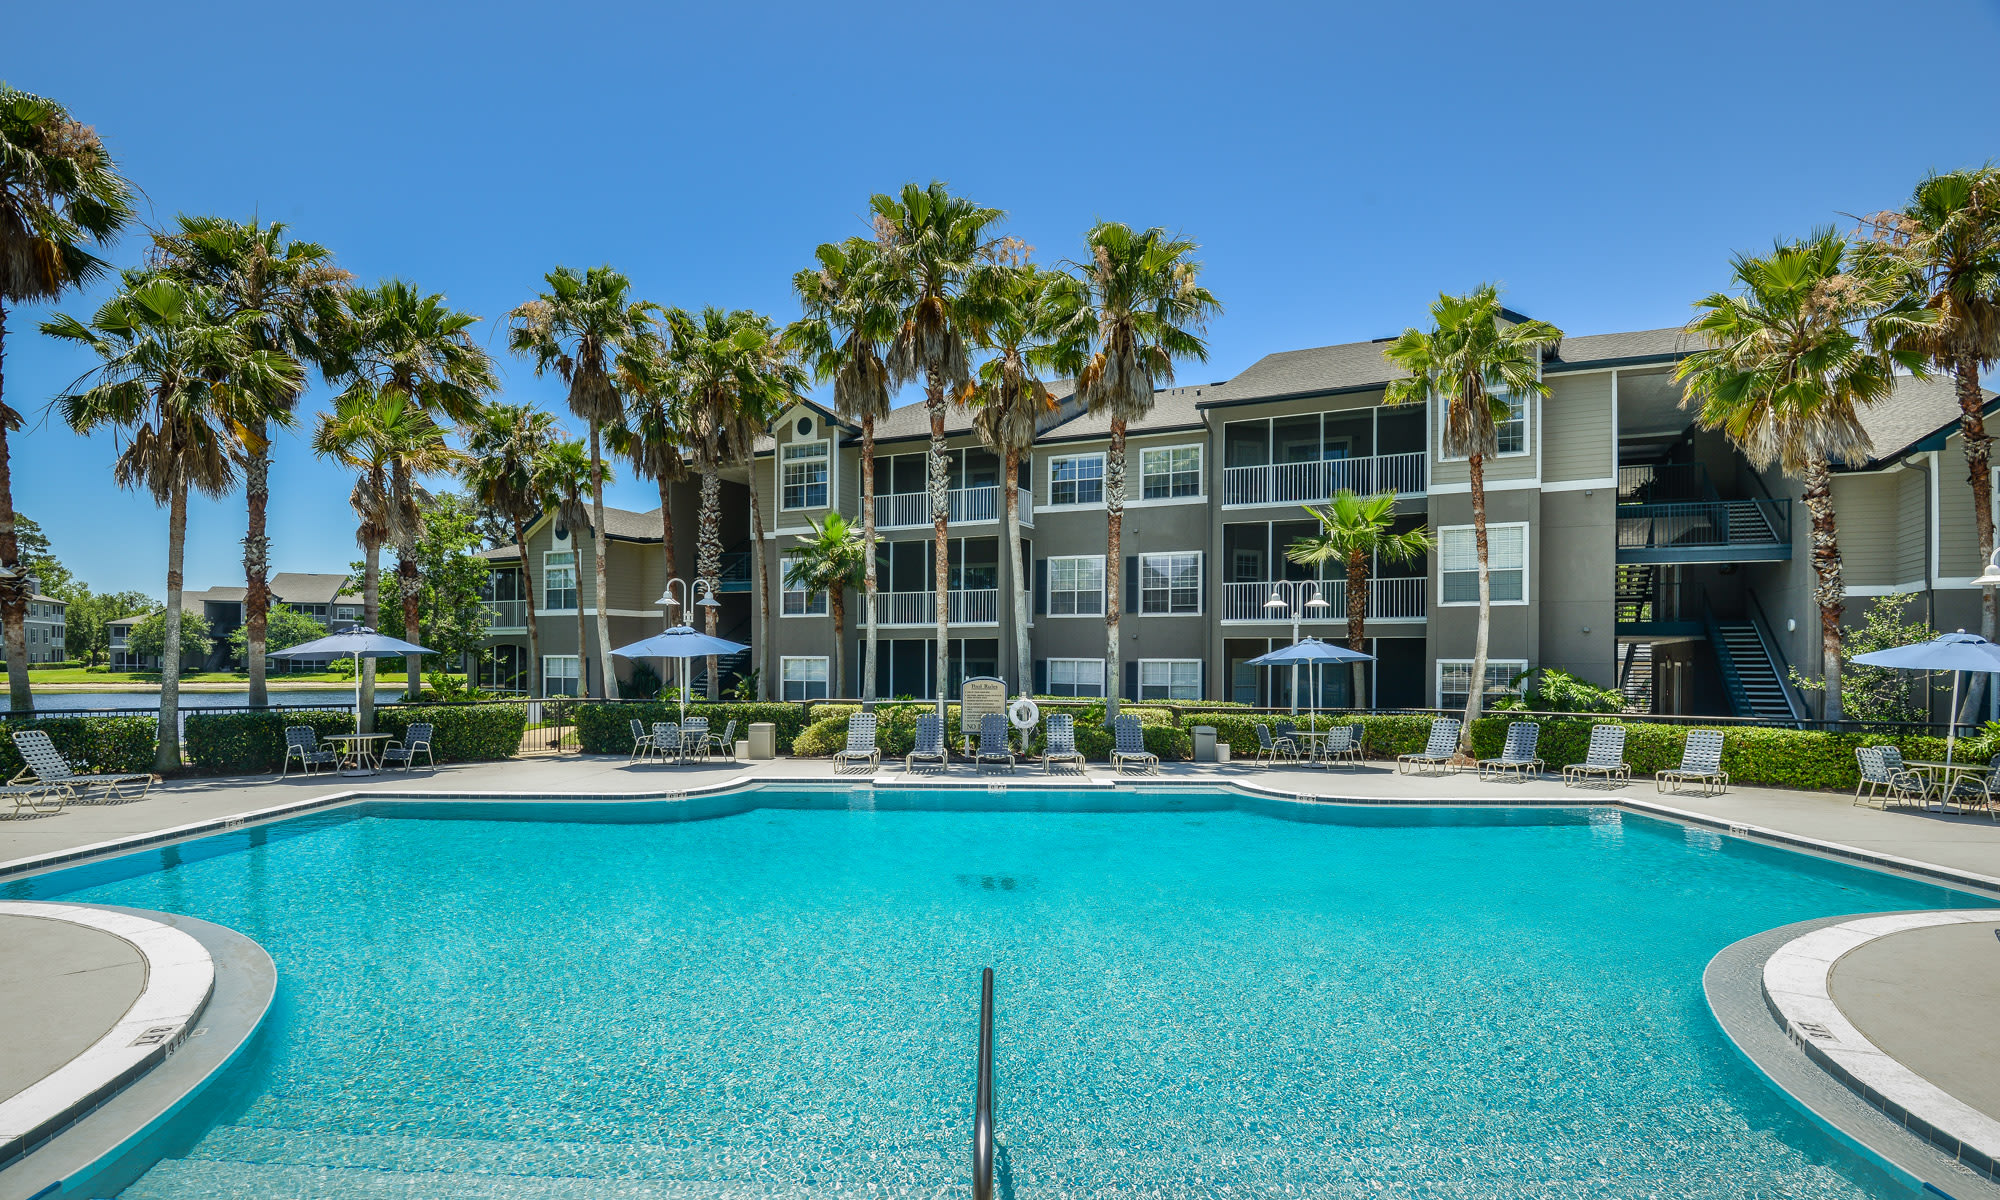 Luxury Apartments In Jacksonville Beach, FL